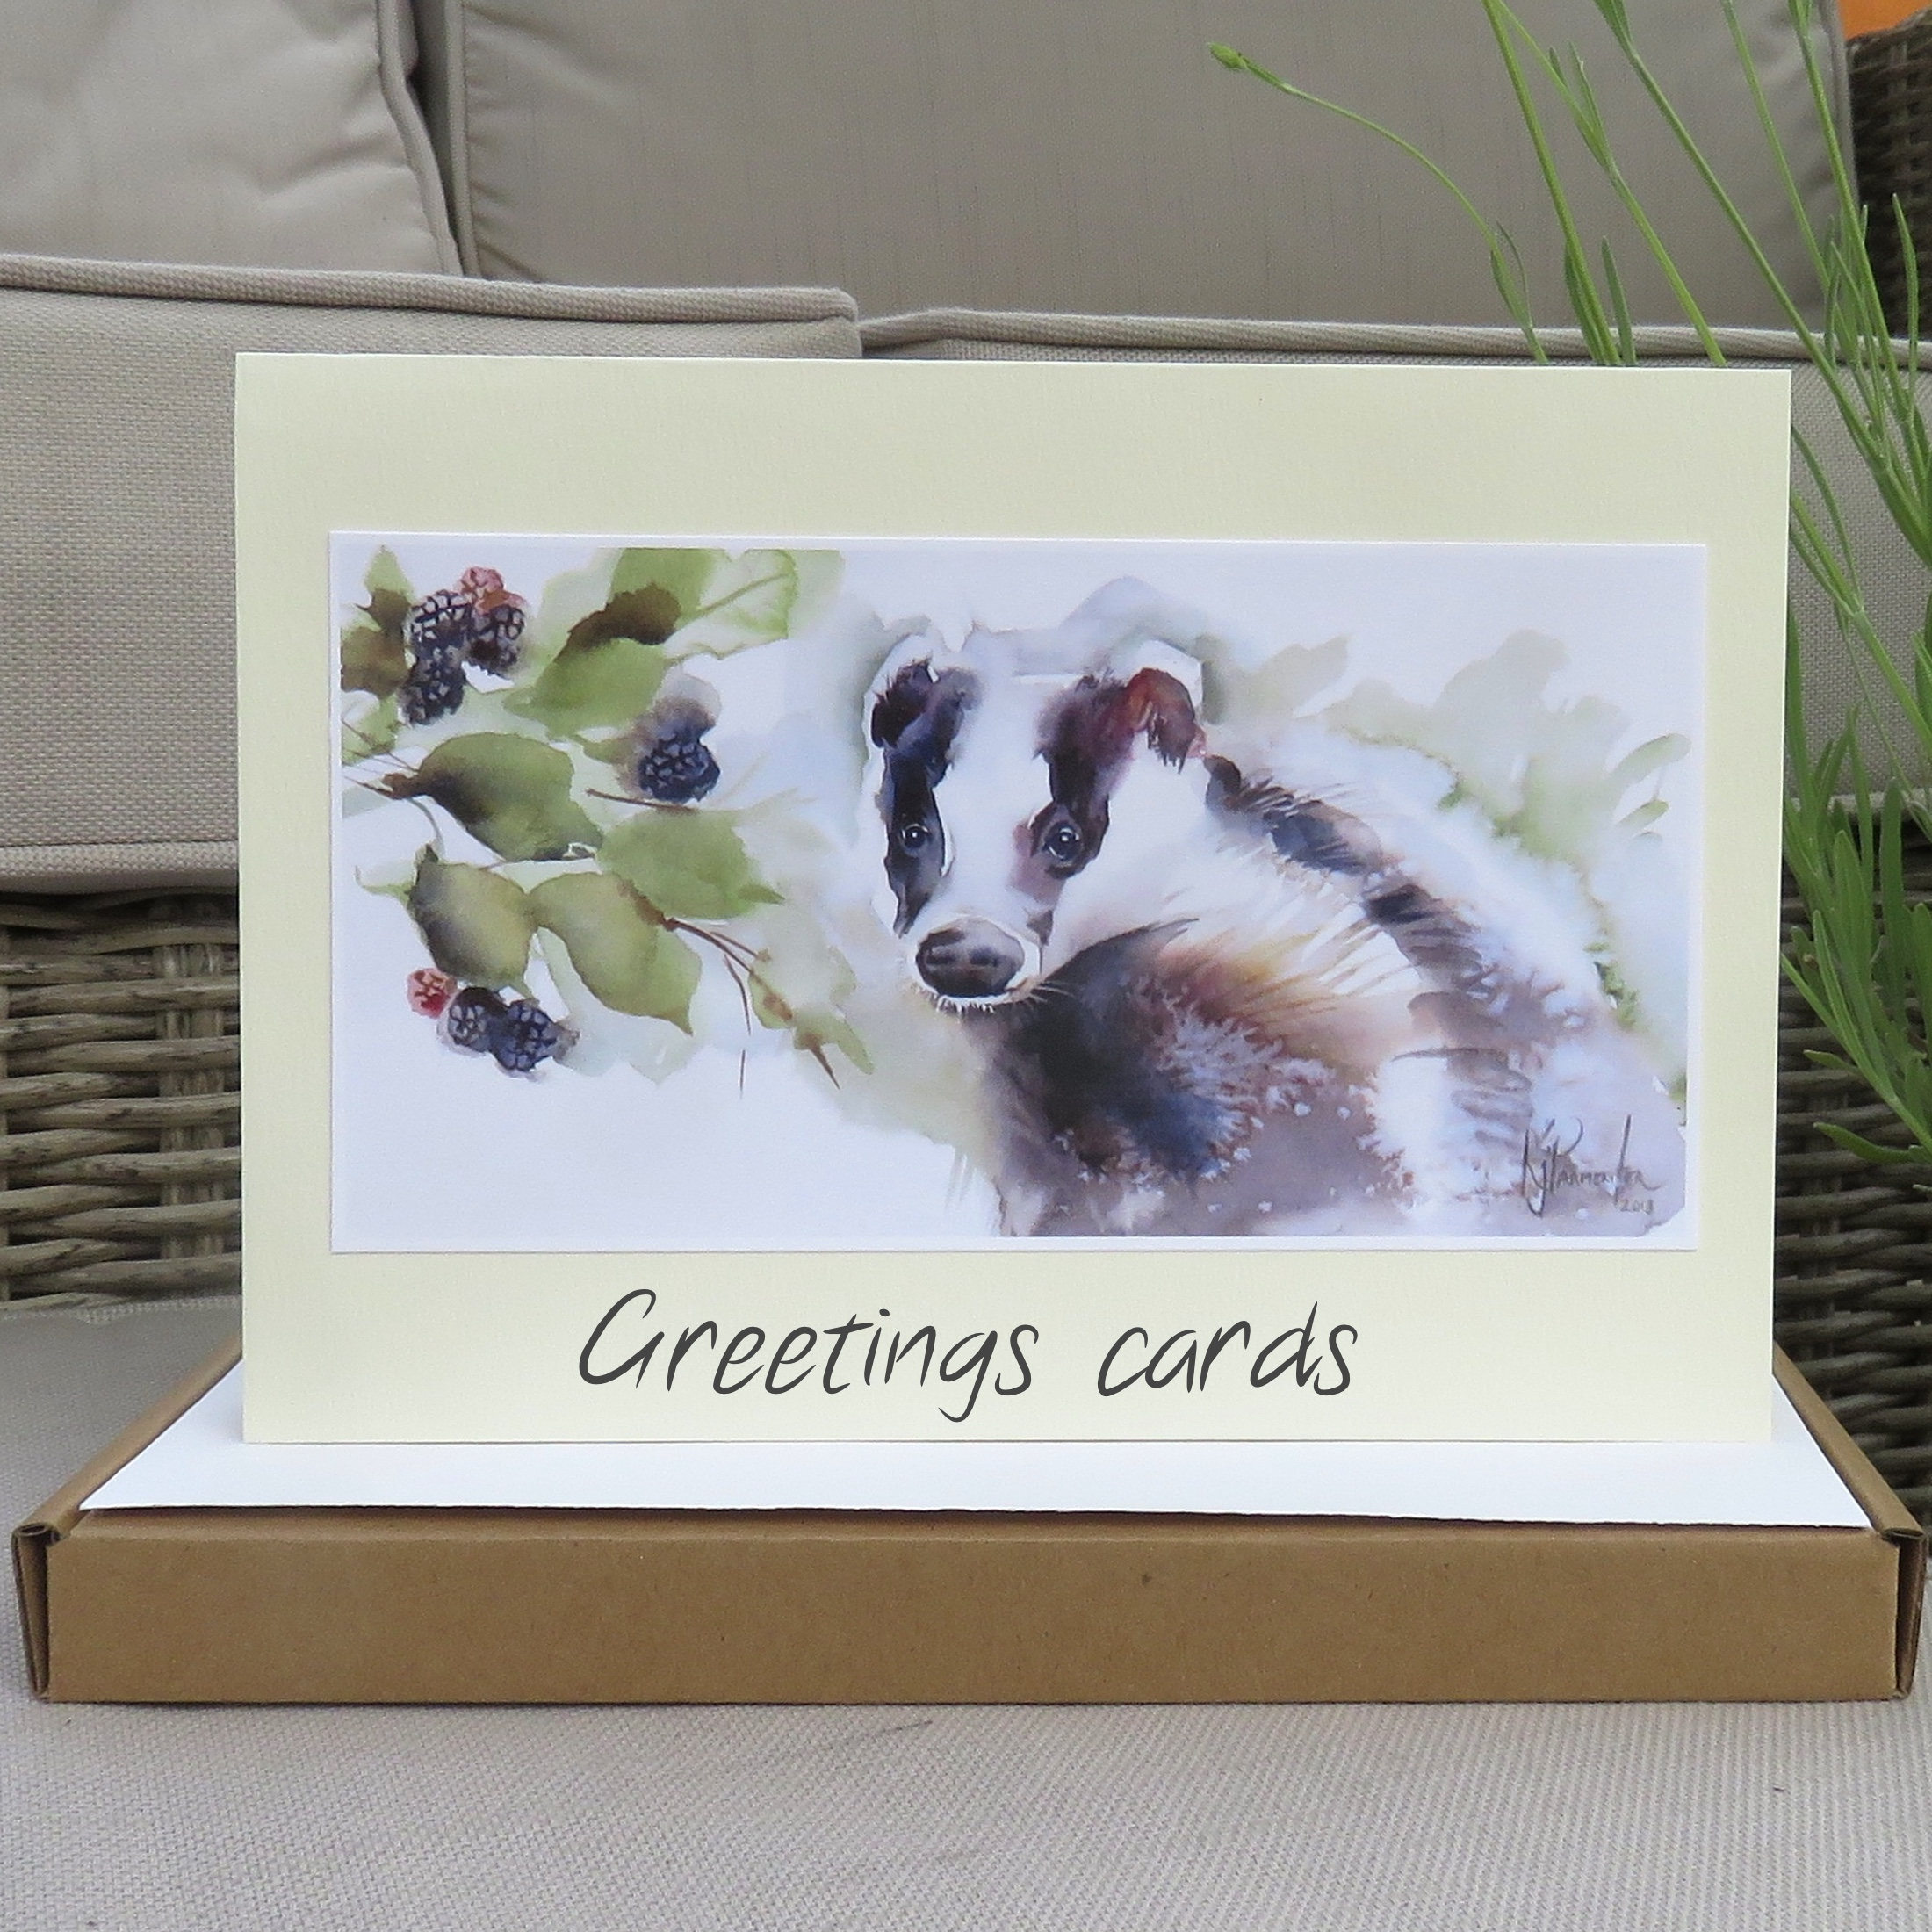 Cards-badger-blackberry-thief_home